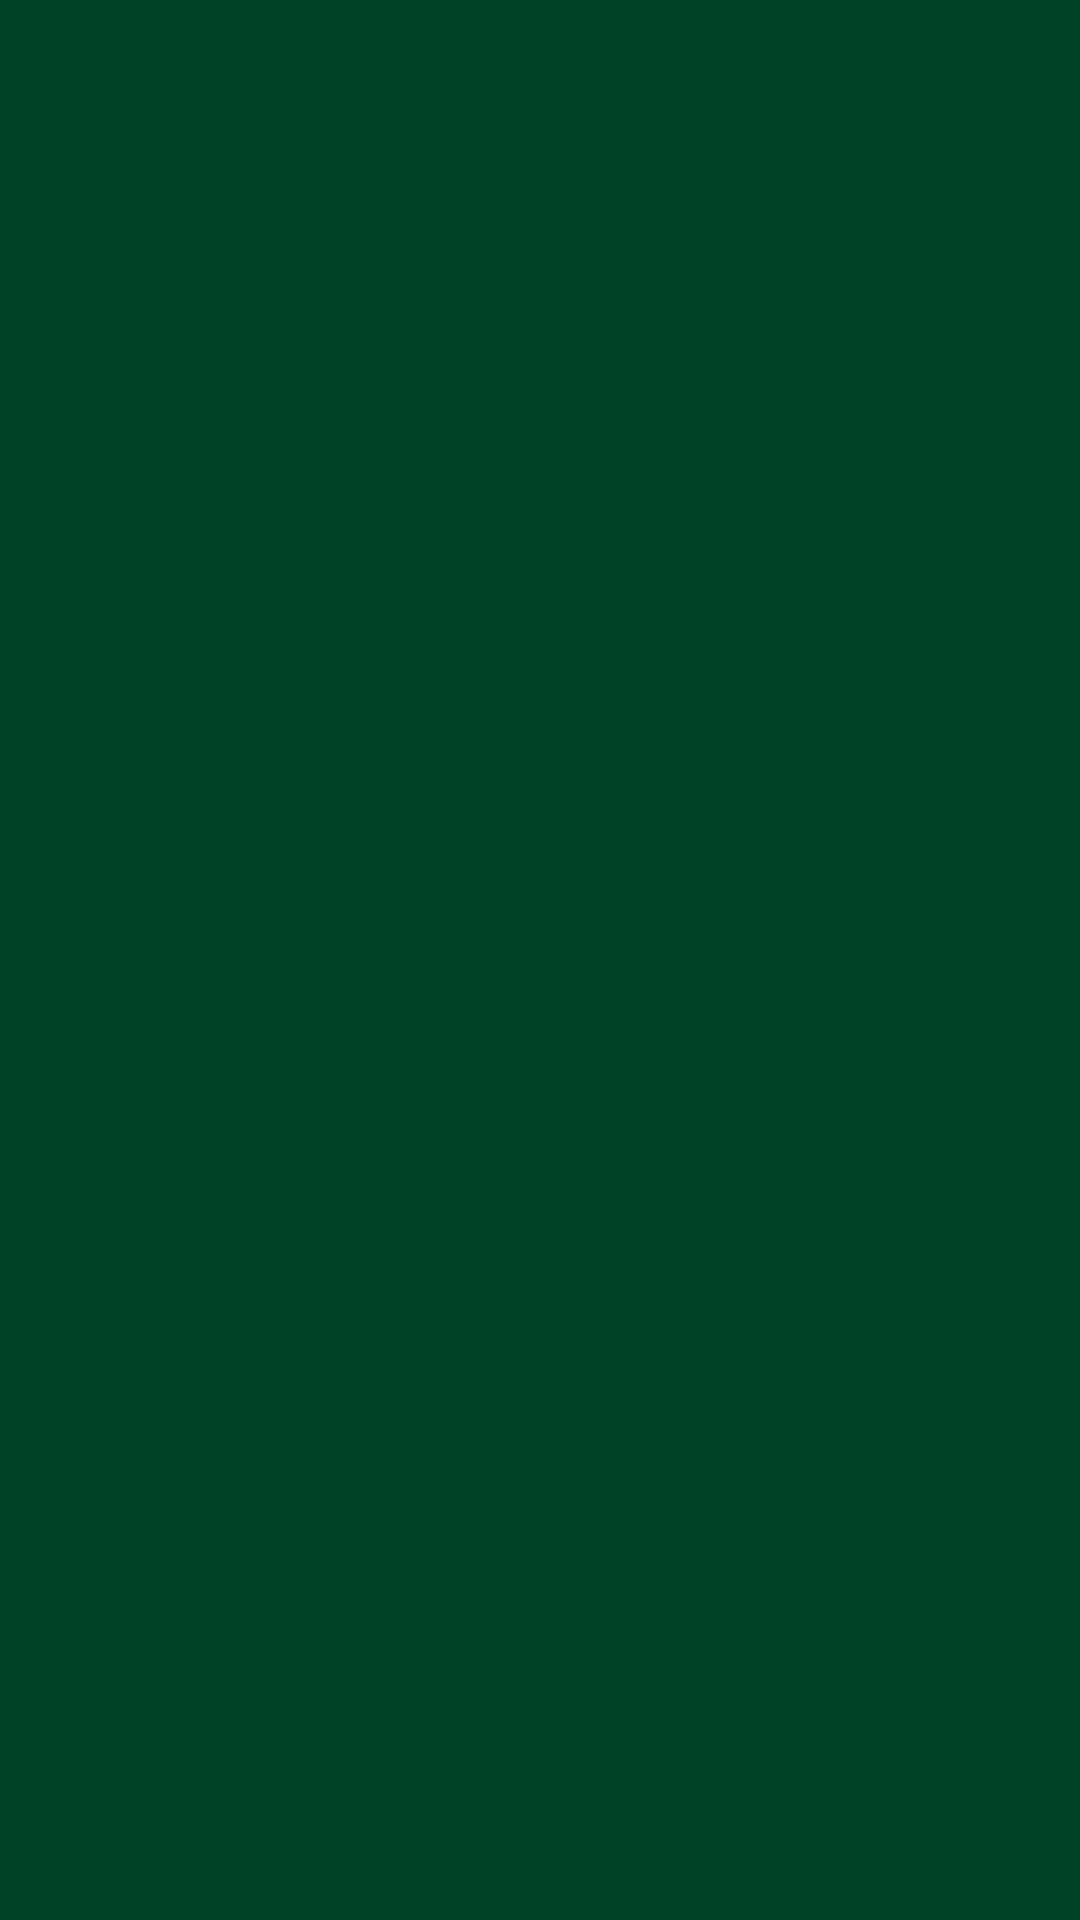 1080x1920 British Racing Green Solid Color Background